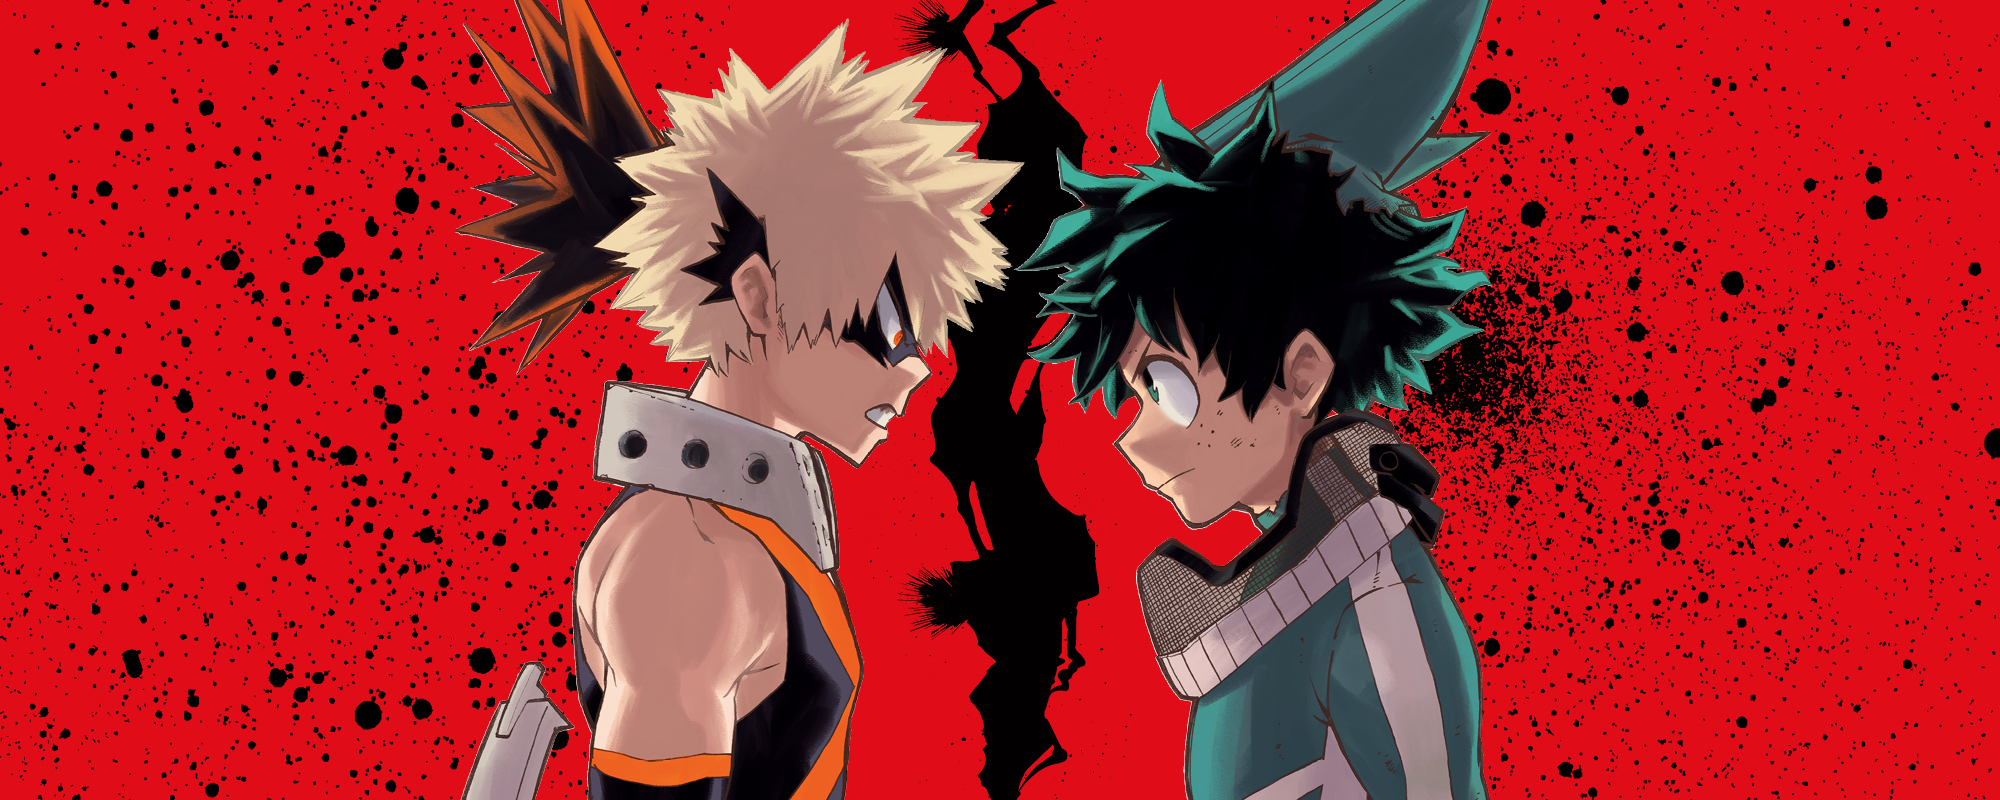 VIZ | Read My Hero Academia Manga Free - Official Shonen